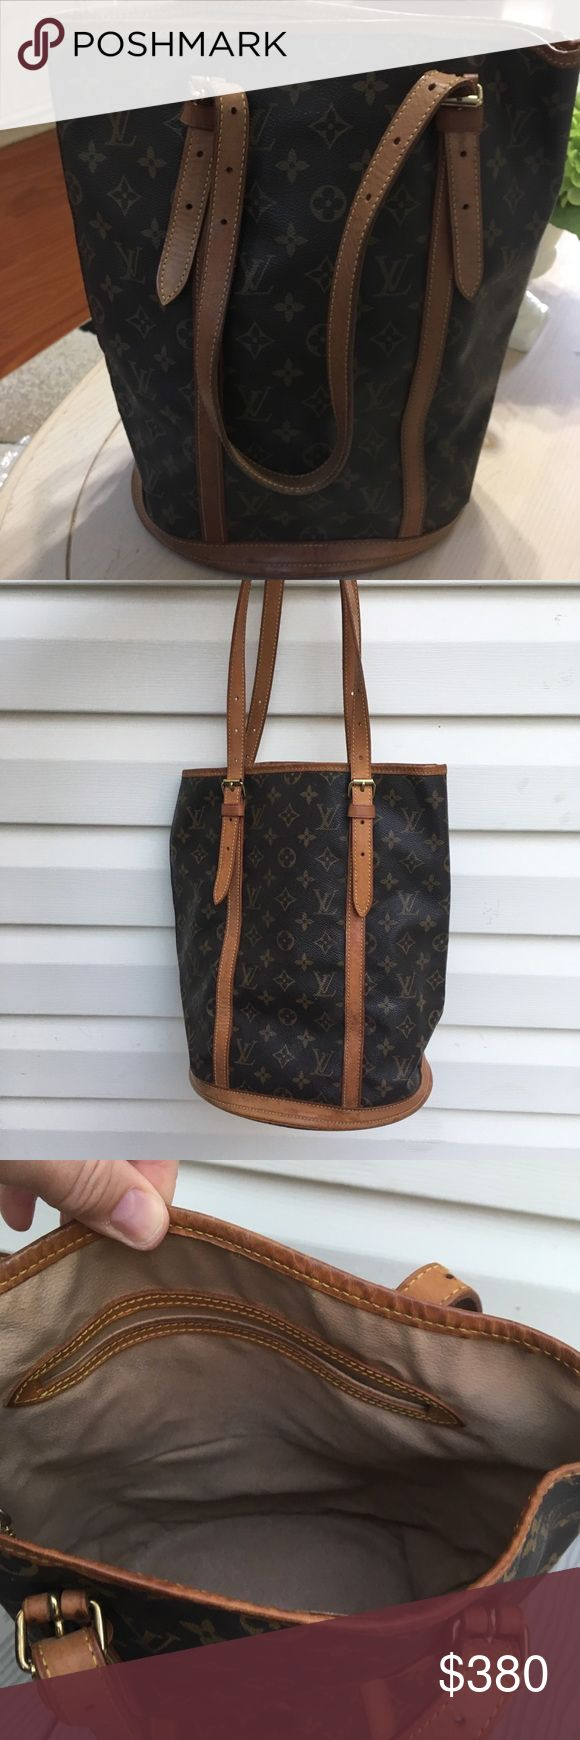 💯% Authentic lv large bucket bag Great bag . Outside normal wear. Scratches, rubbing. Inside no peeling no sticky. Louis Vuitton Bags Shoulder Bags